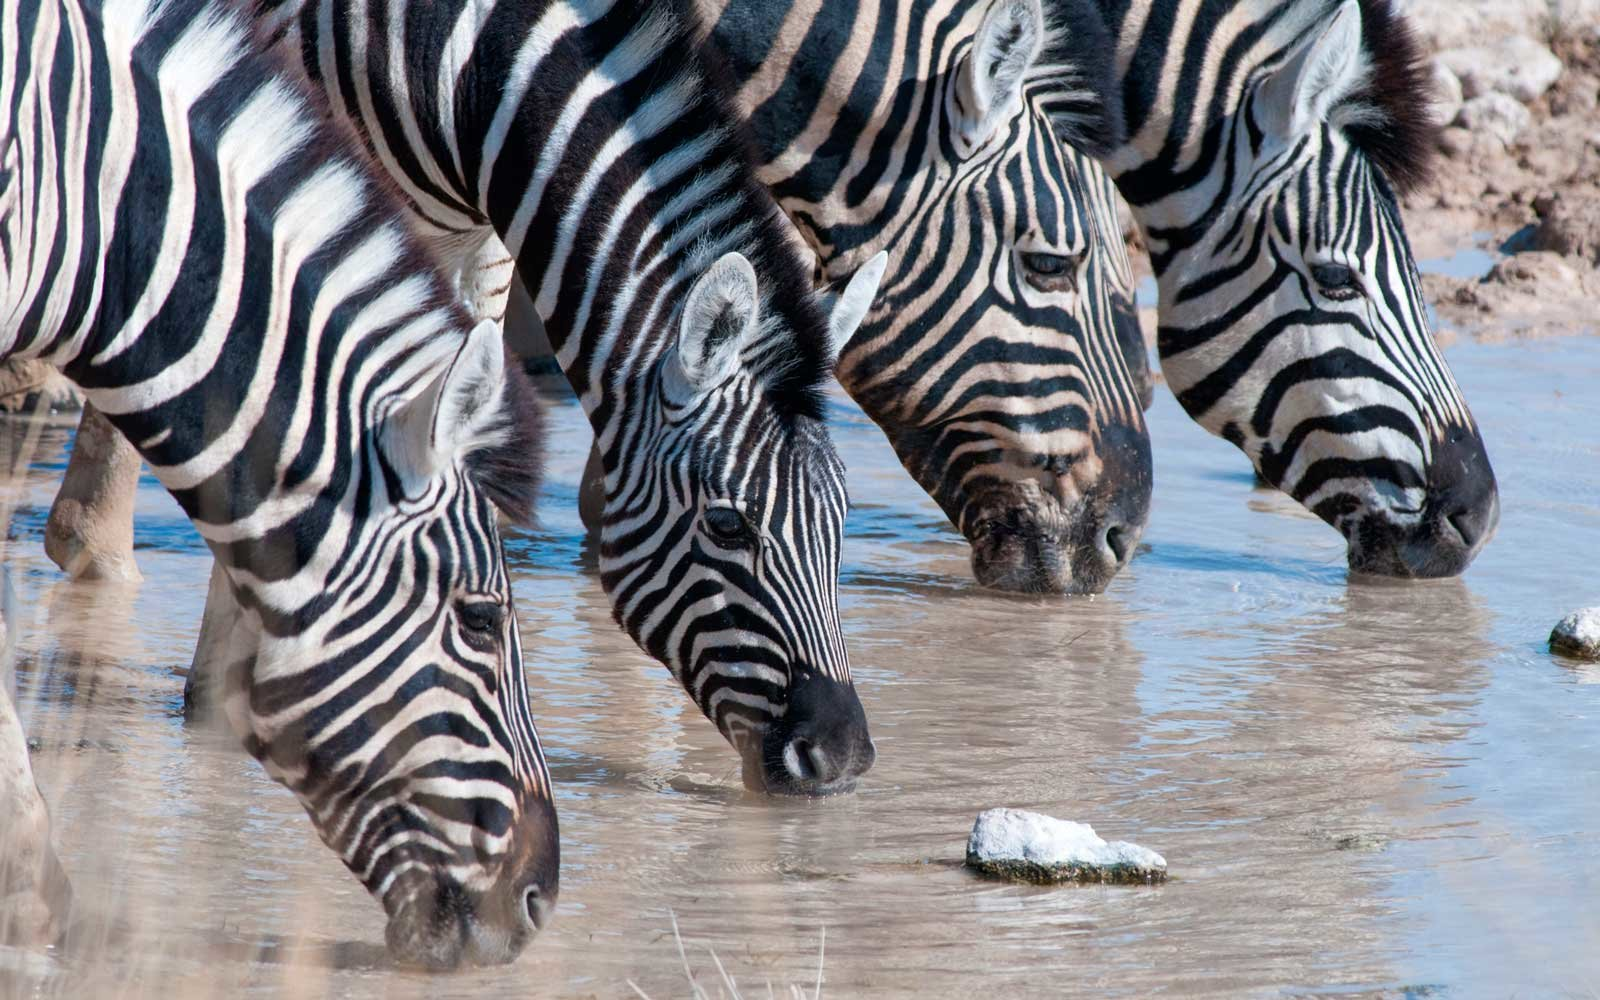 Four zebras drinking from a waterhole in Etosha National Park. Namibia, Southern Africa.